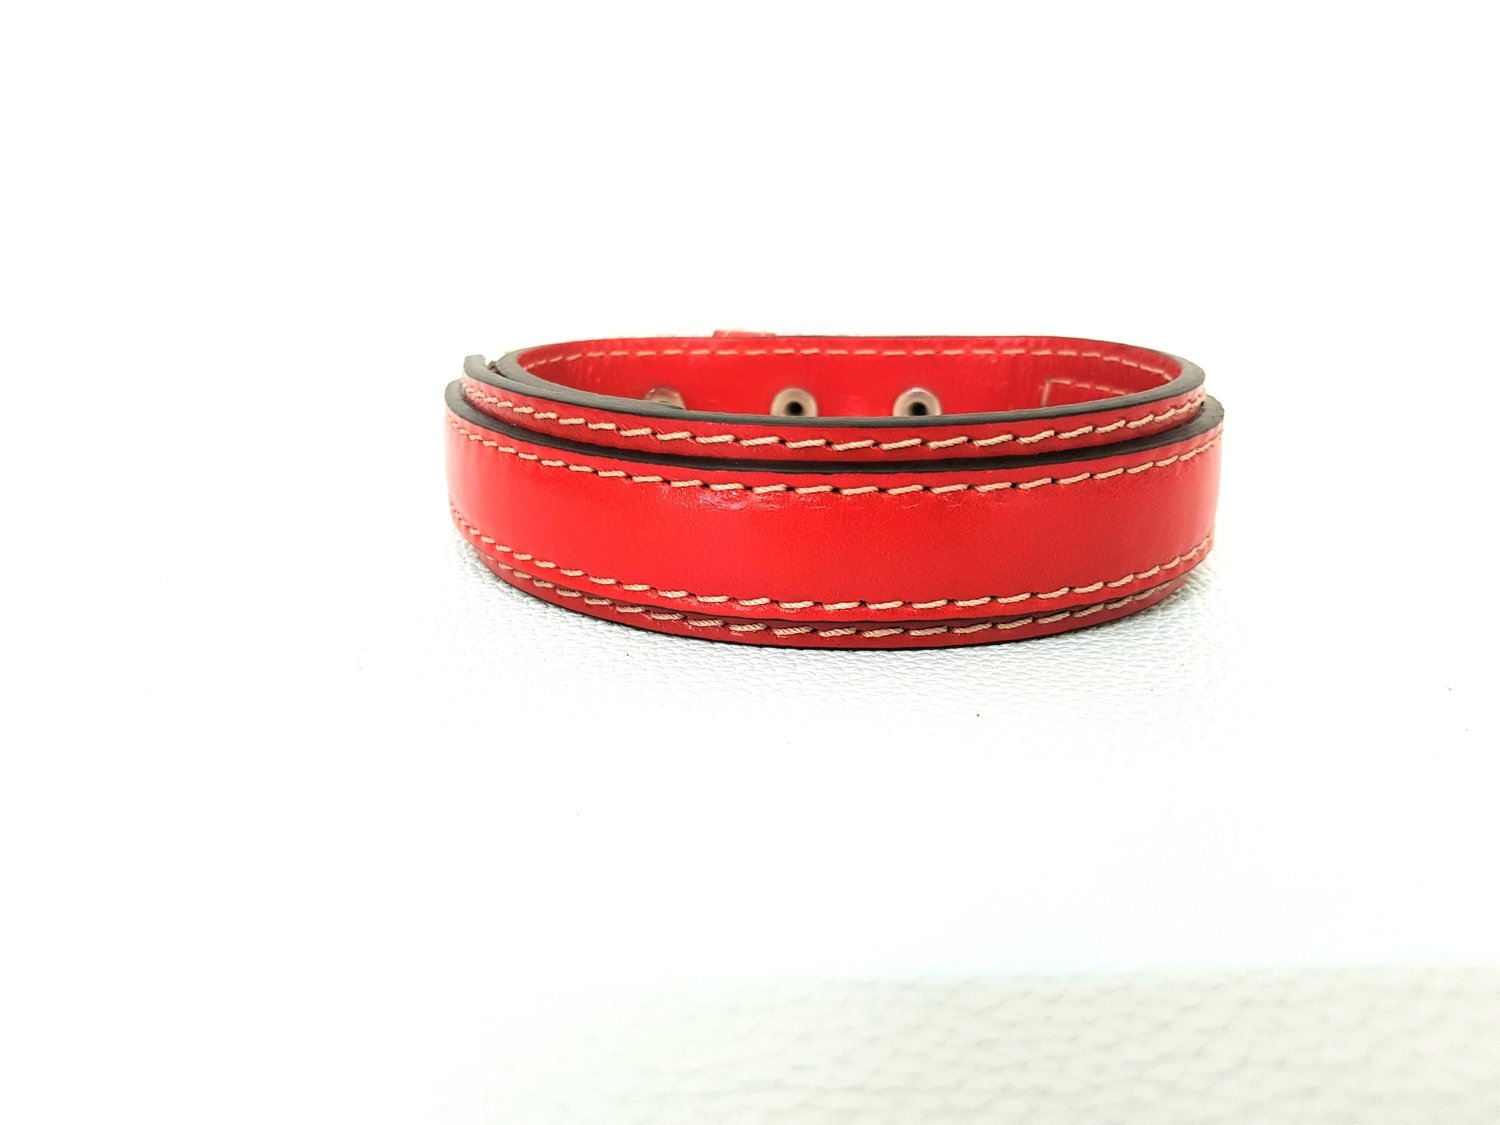 Rosso / Red (3 cm / 1,18 inches)